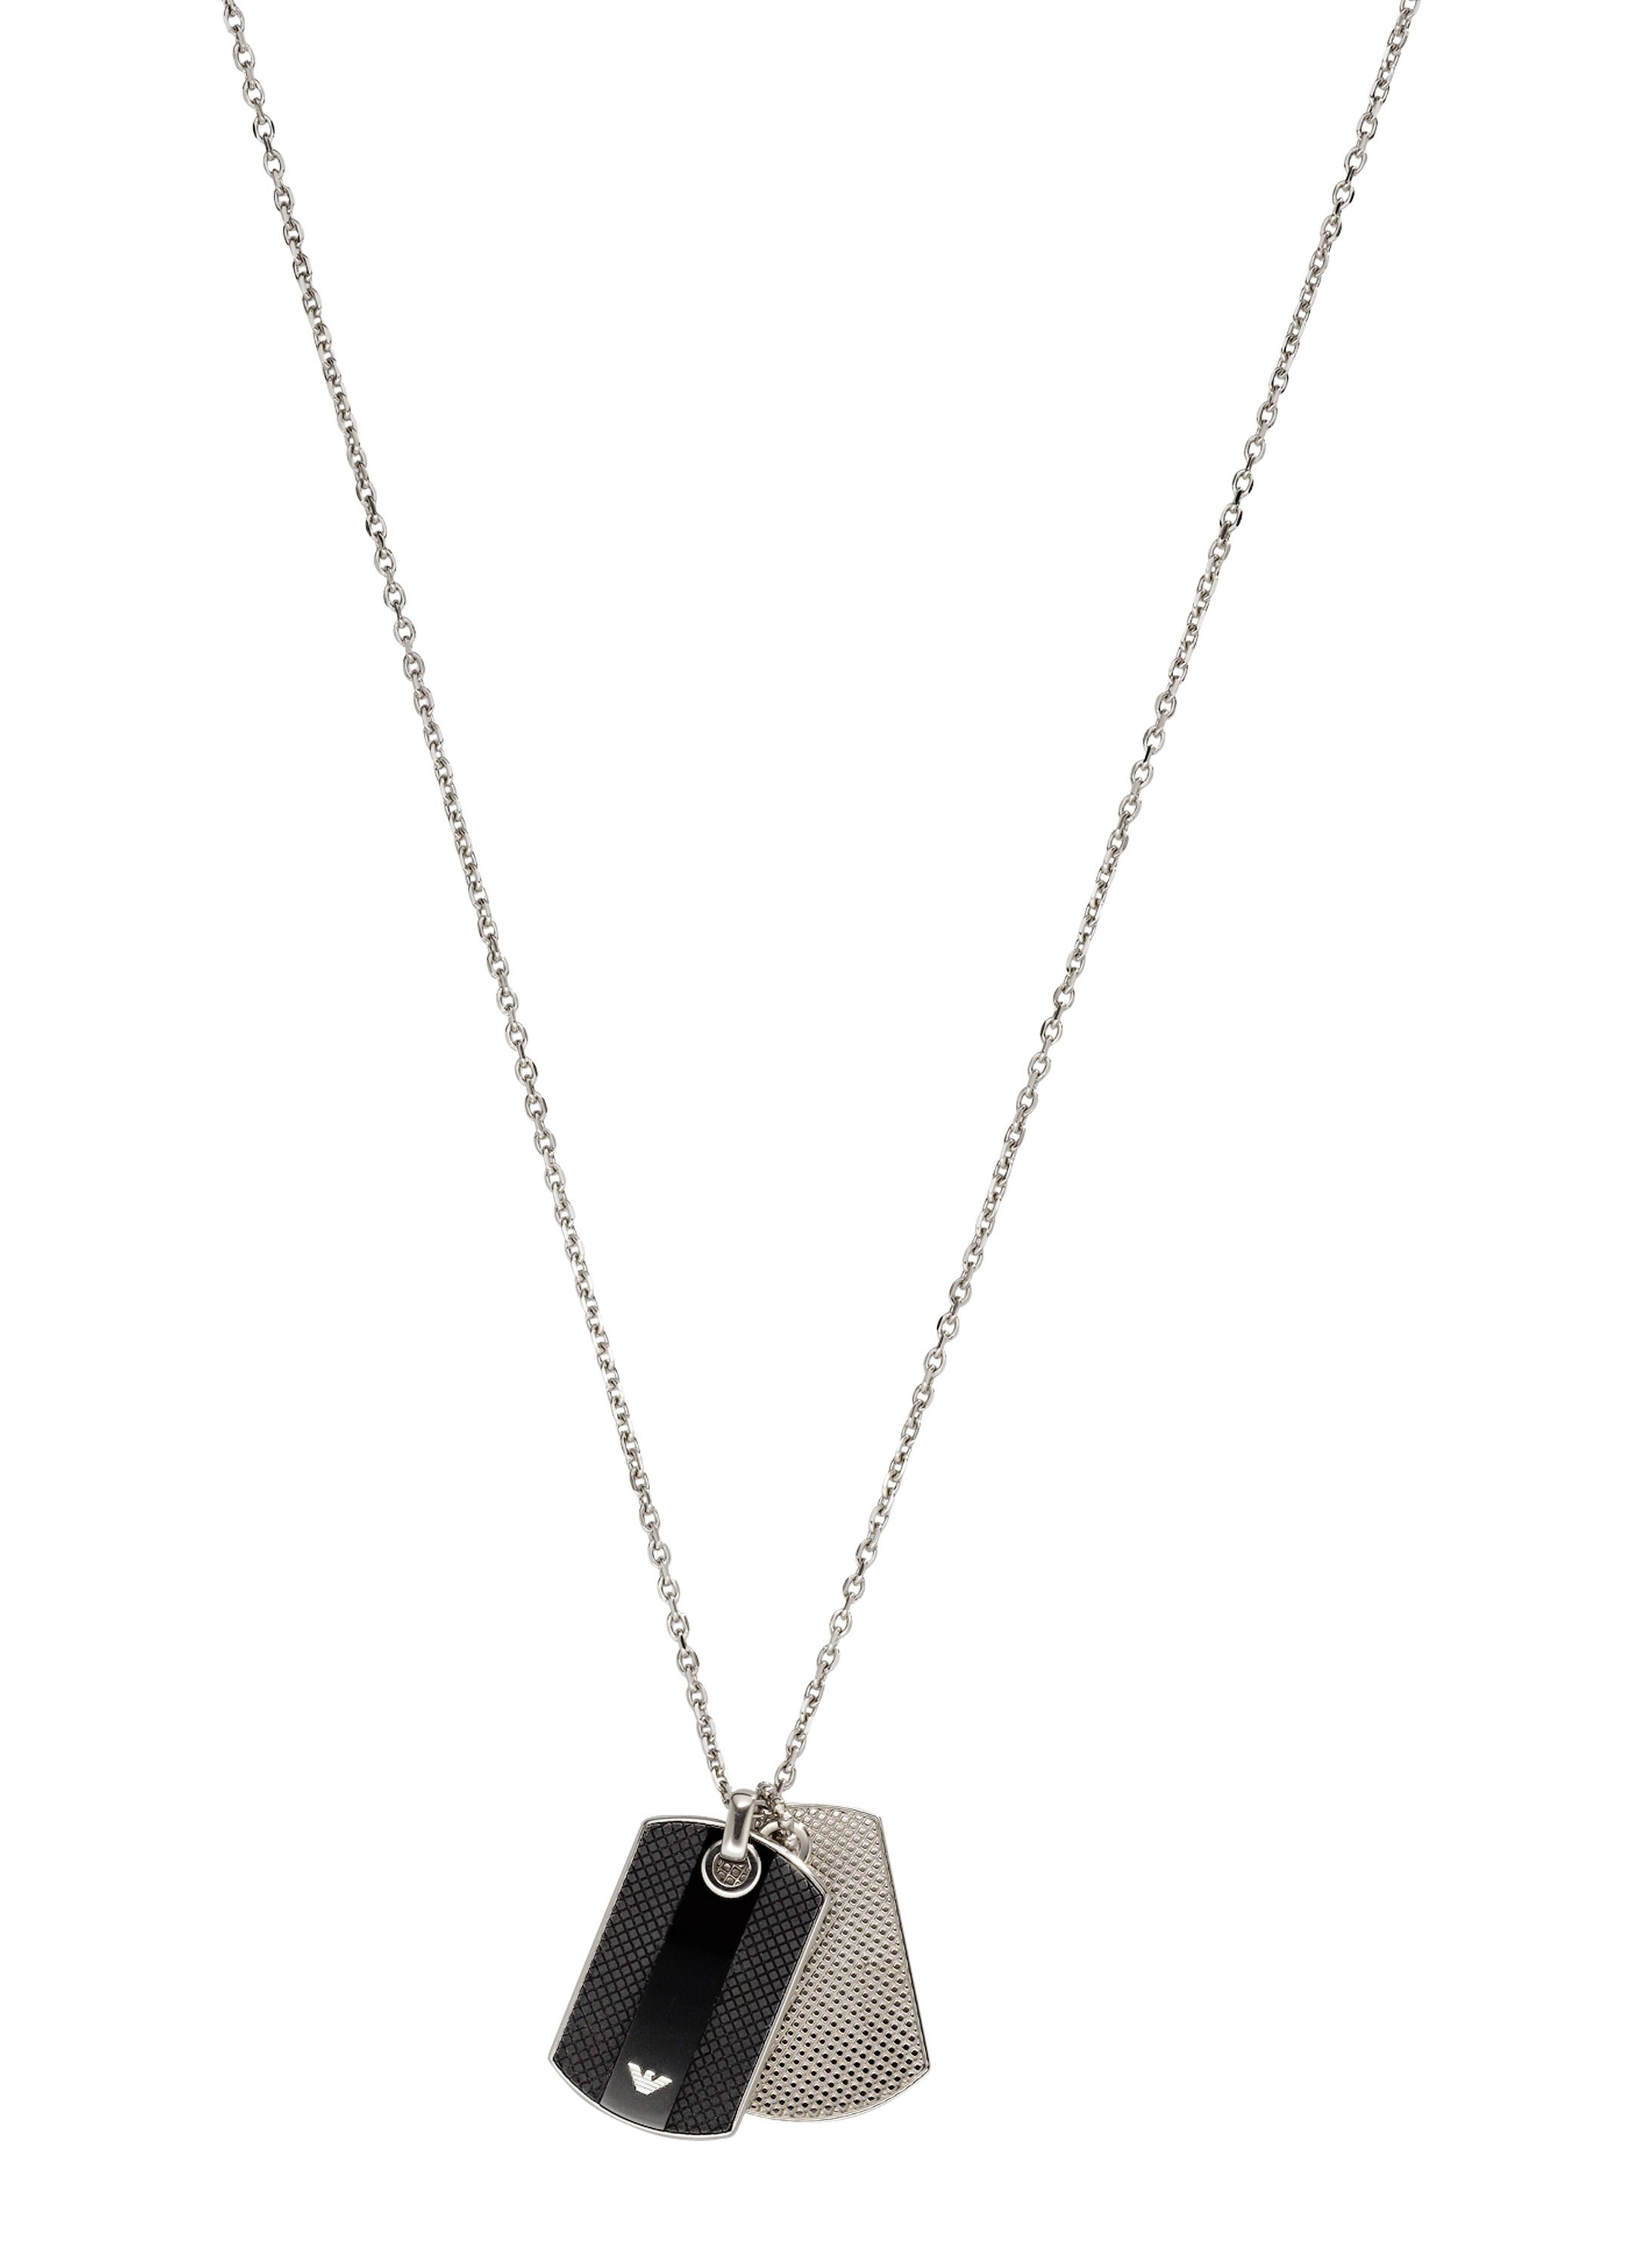 Emporio Armani Eg1542040 mens necklace Silver Metallic